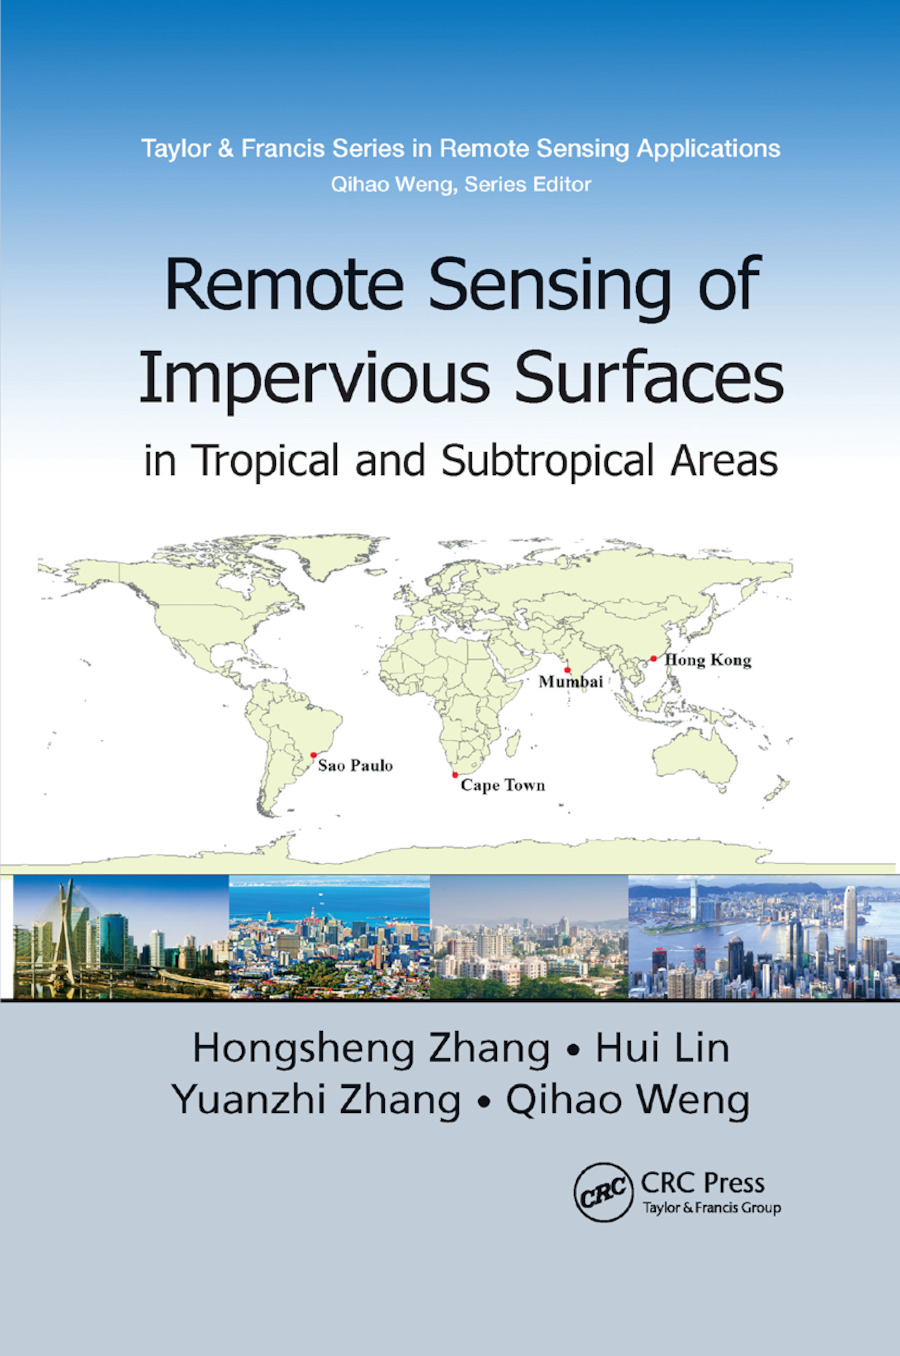 Remote Sensing of Impervious Surfaces in Tropical and Subtropical Areas book cover